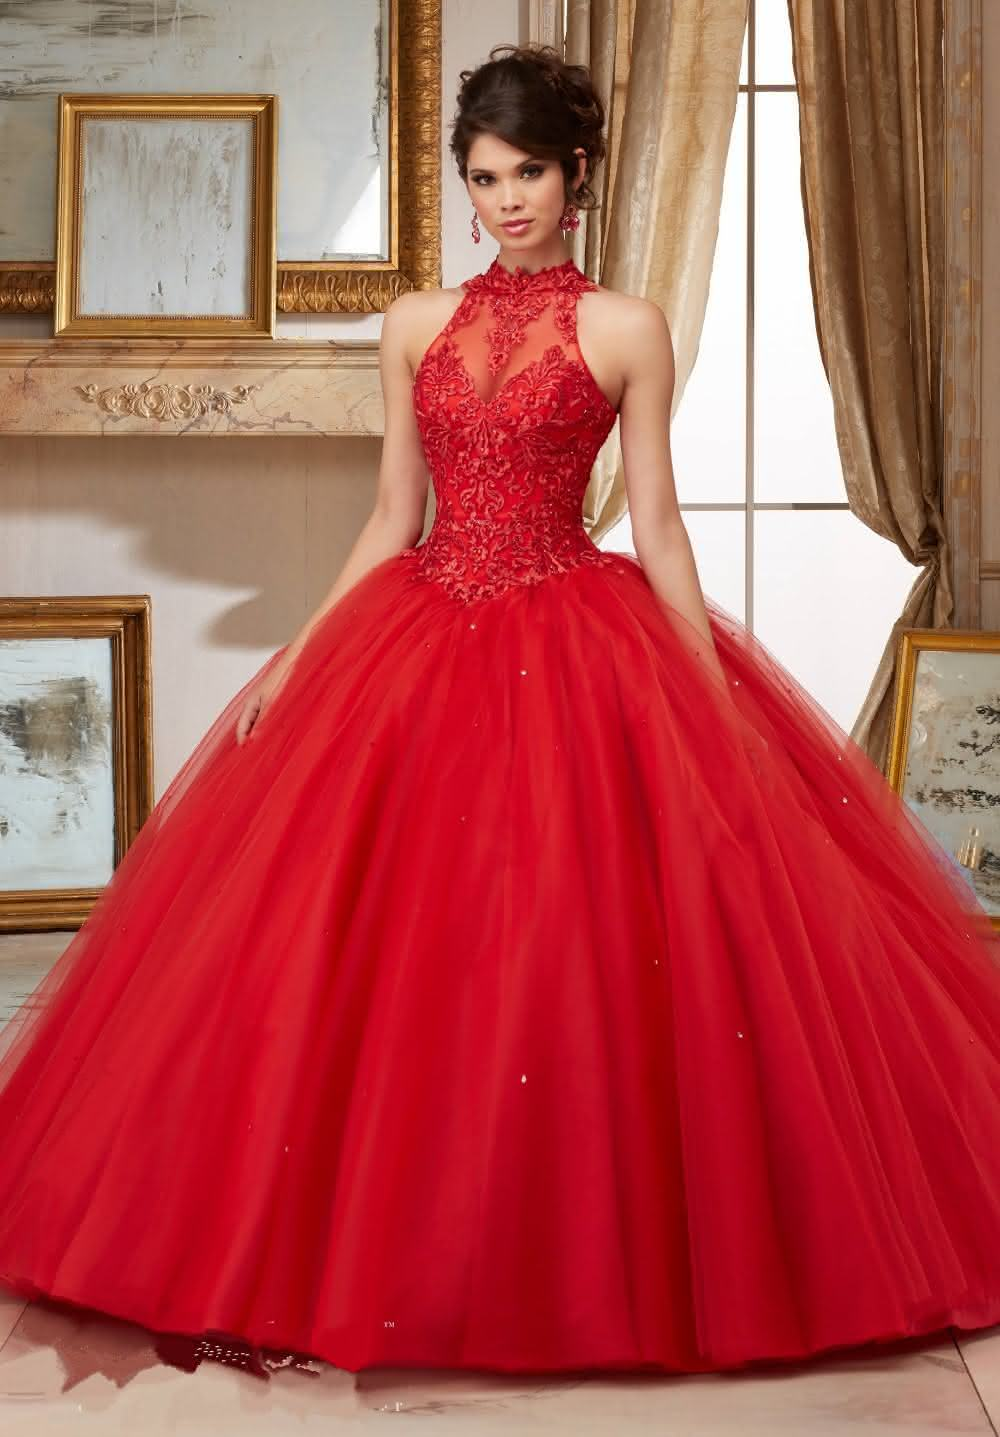 Crystal-High-Neck-Ball-font-b-Gown-b-font-Red-Quinceanera-Dresses-2016-Lace-Appliques-Blue